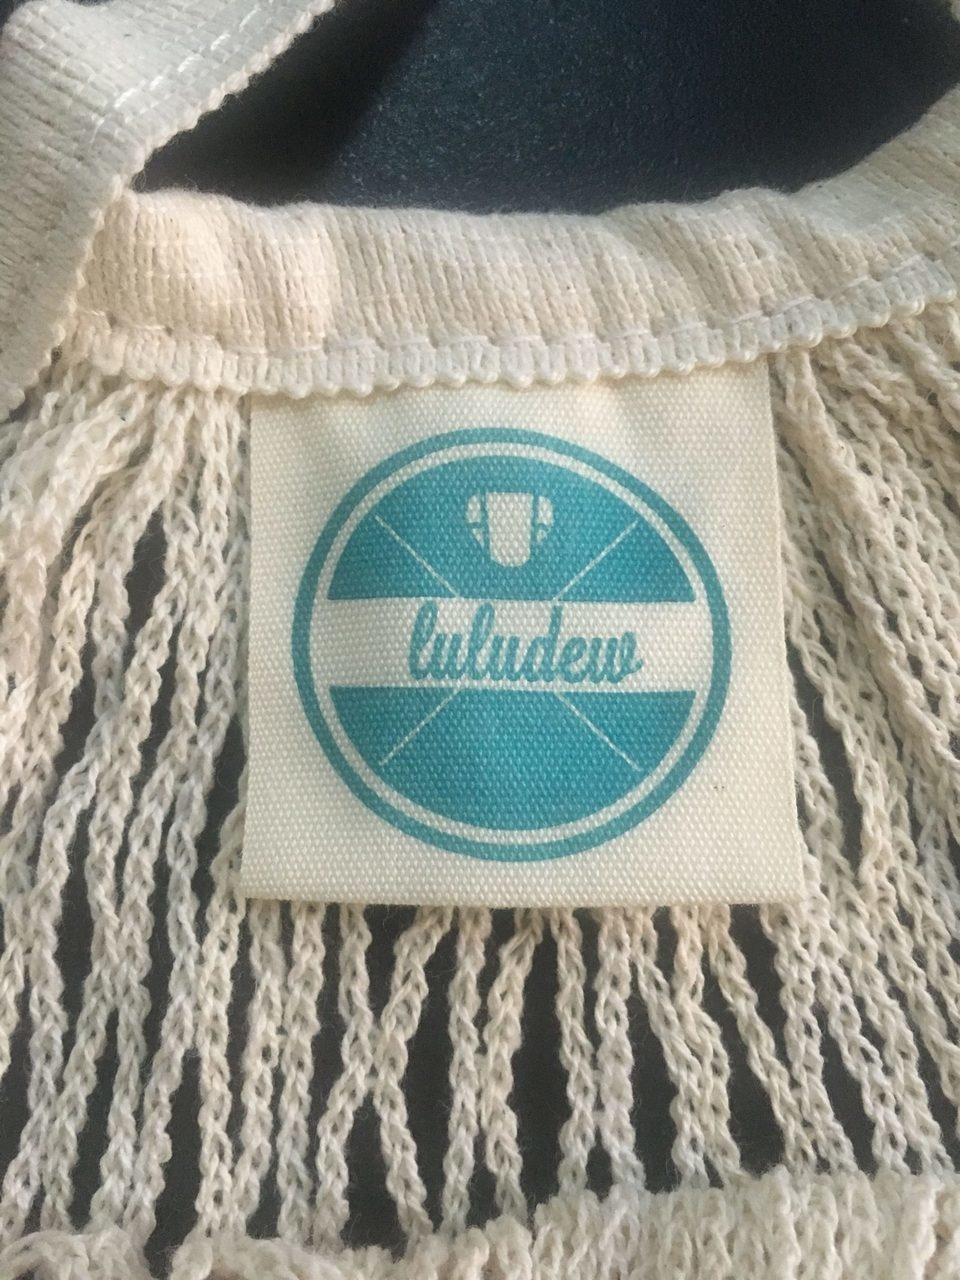 Luludew Mesh Grocery Bag